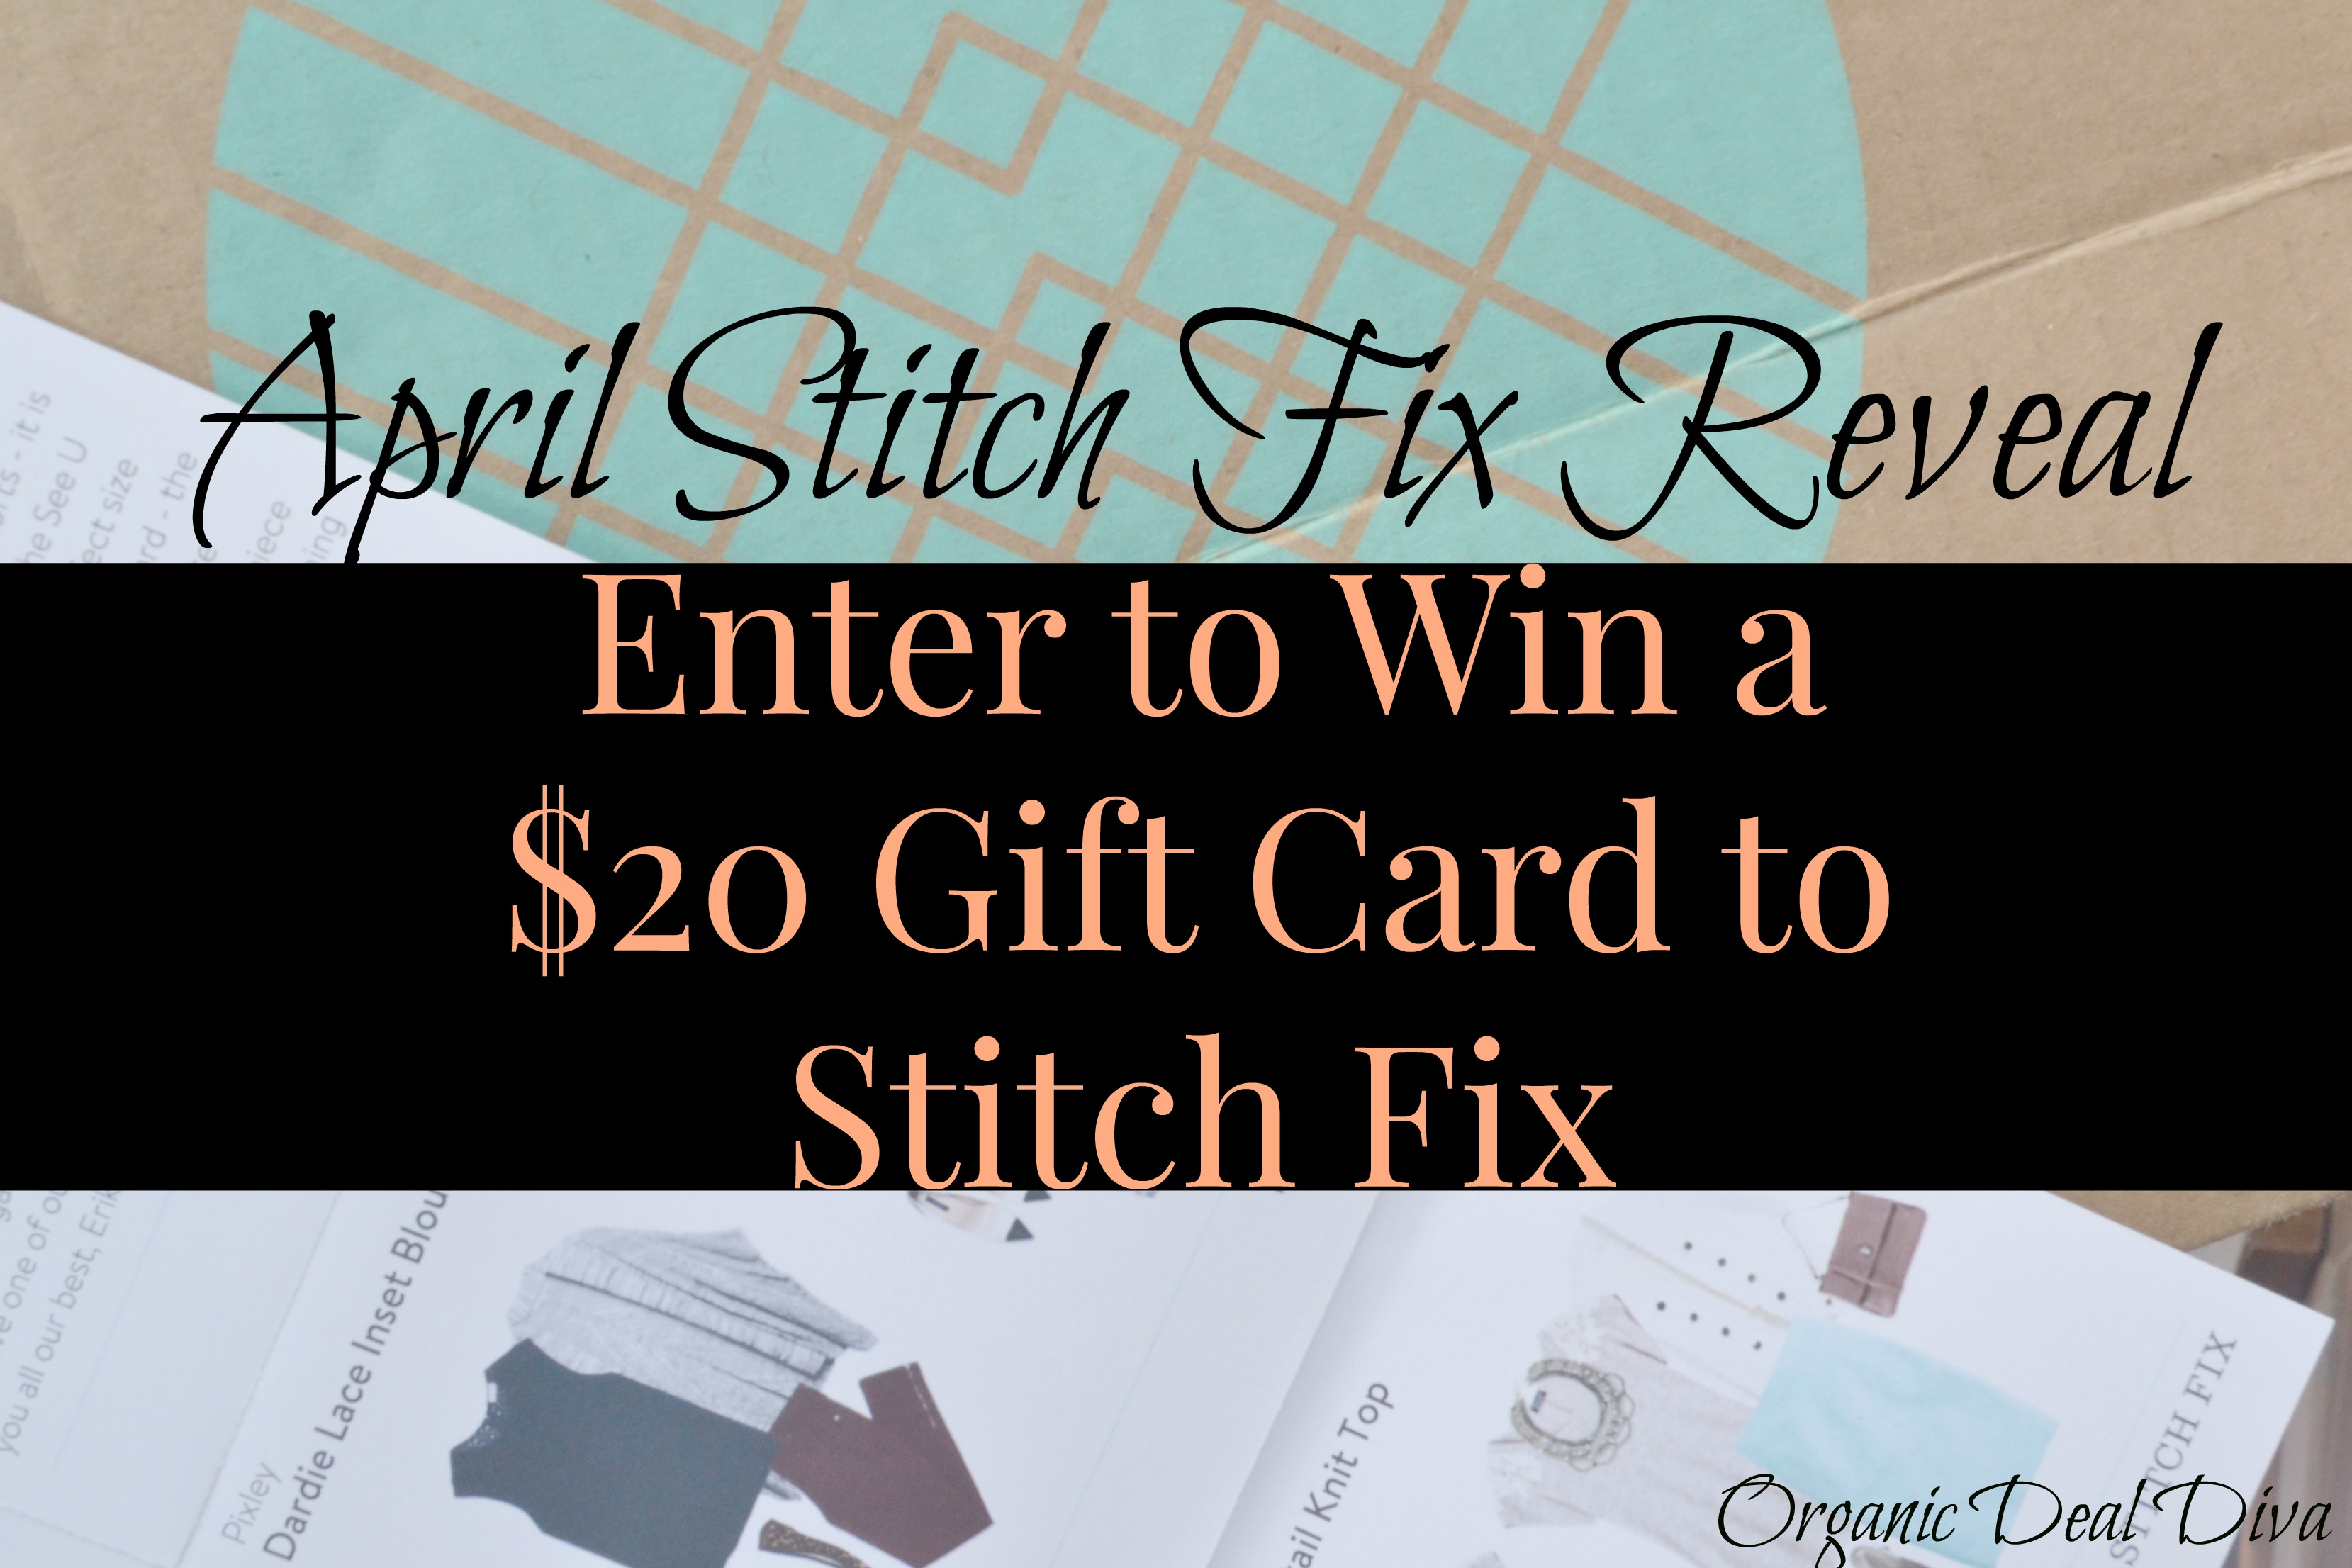 Enter to win a $20 Stitch Fix Gift Card